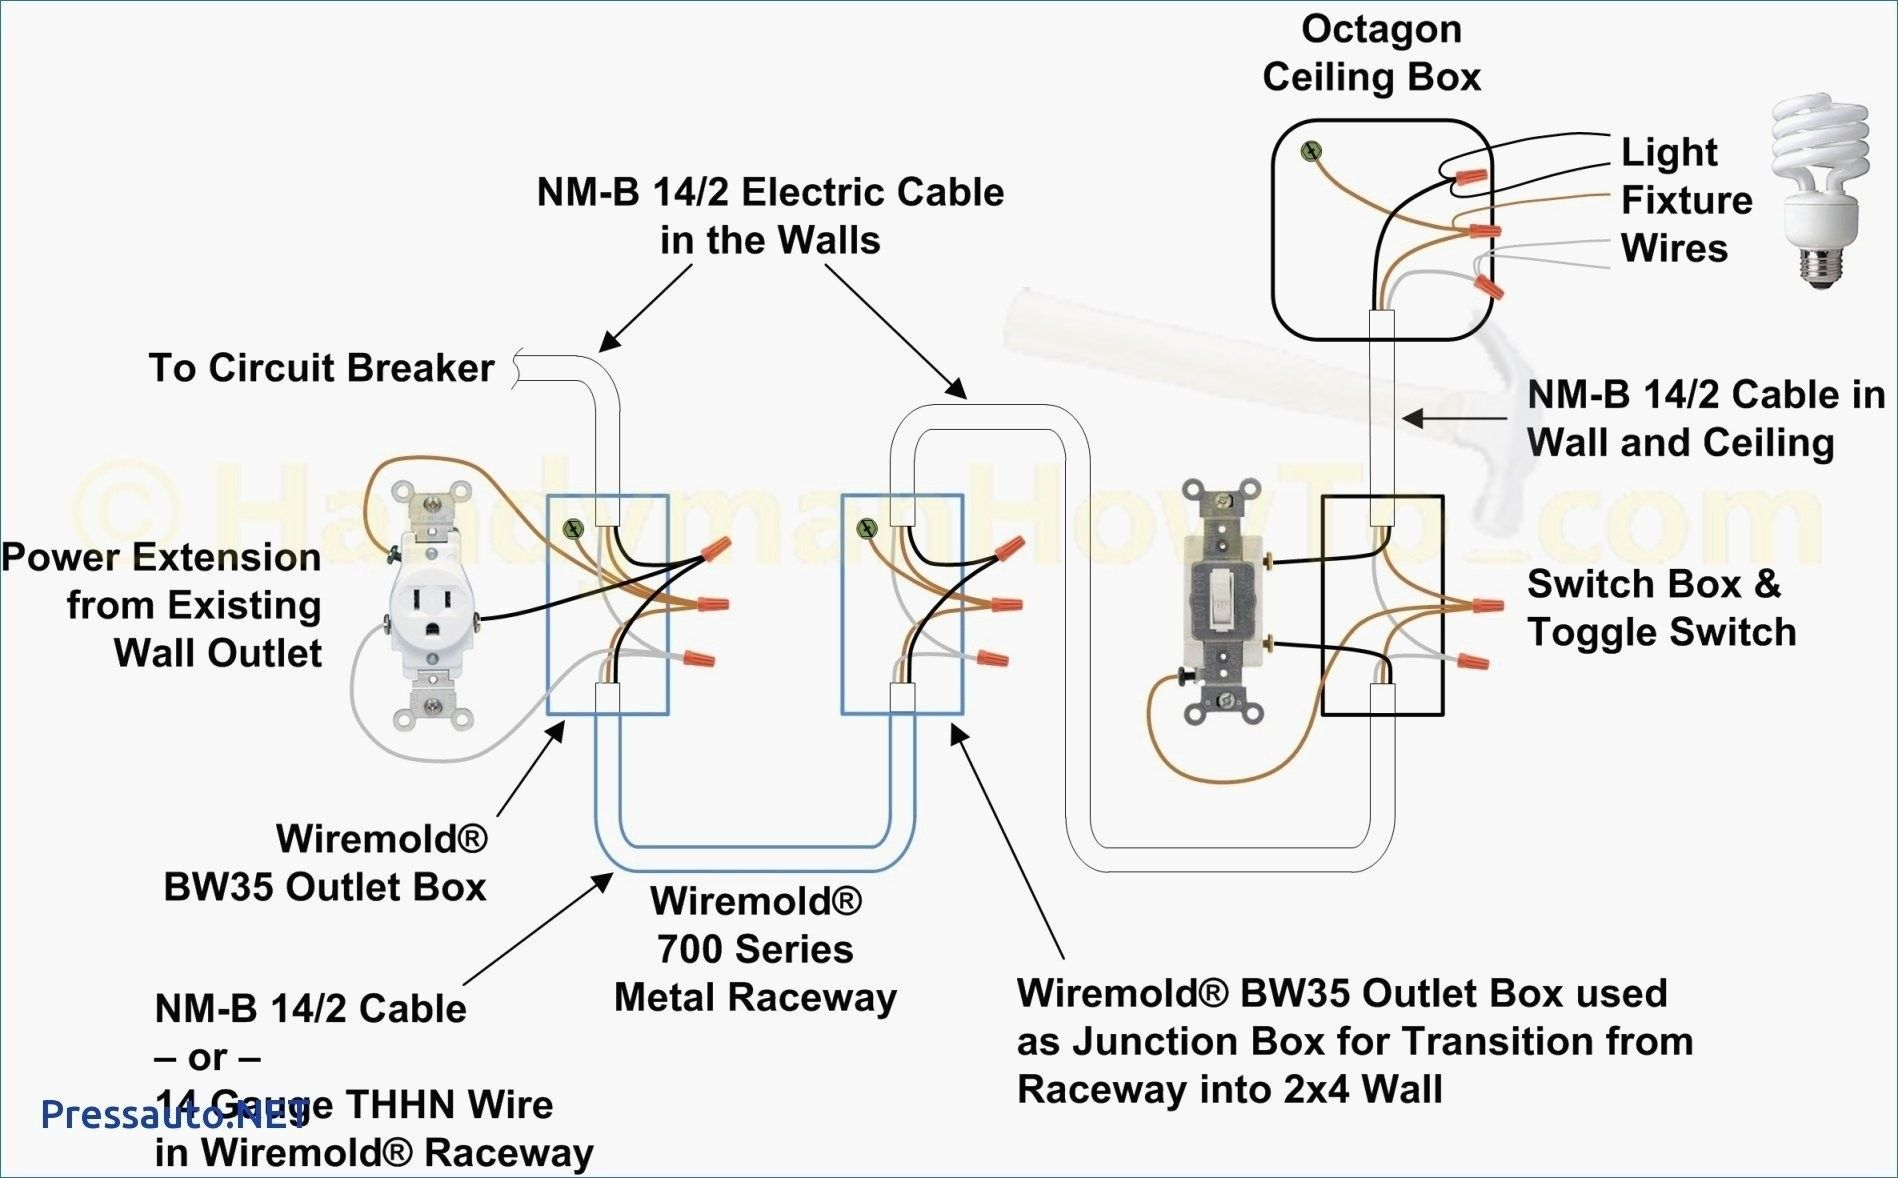 Best Of Wiring Diagram for New Light and Switch #diagrams ... Electrical Outlets Diagrams on window diagram, power outlet diagram, bathroom outlet diagram, wall outlet diagram, electrical installation pdf, switch outlet diagram, 20 amp outlet diagram, floor outlet diagram, multiple outlet wiring diagram, home outlet wiring diagram, outlet connection diagram, electric outlet wiring diagram, outlet plug diagram, kitchen outlet diagram, camera body diagram, wiring a outlet diagram, wiring an outlet diagram, outlet circuit diagram,